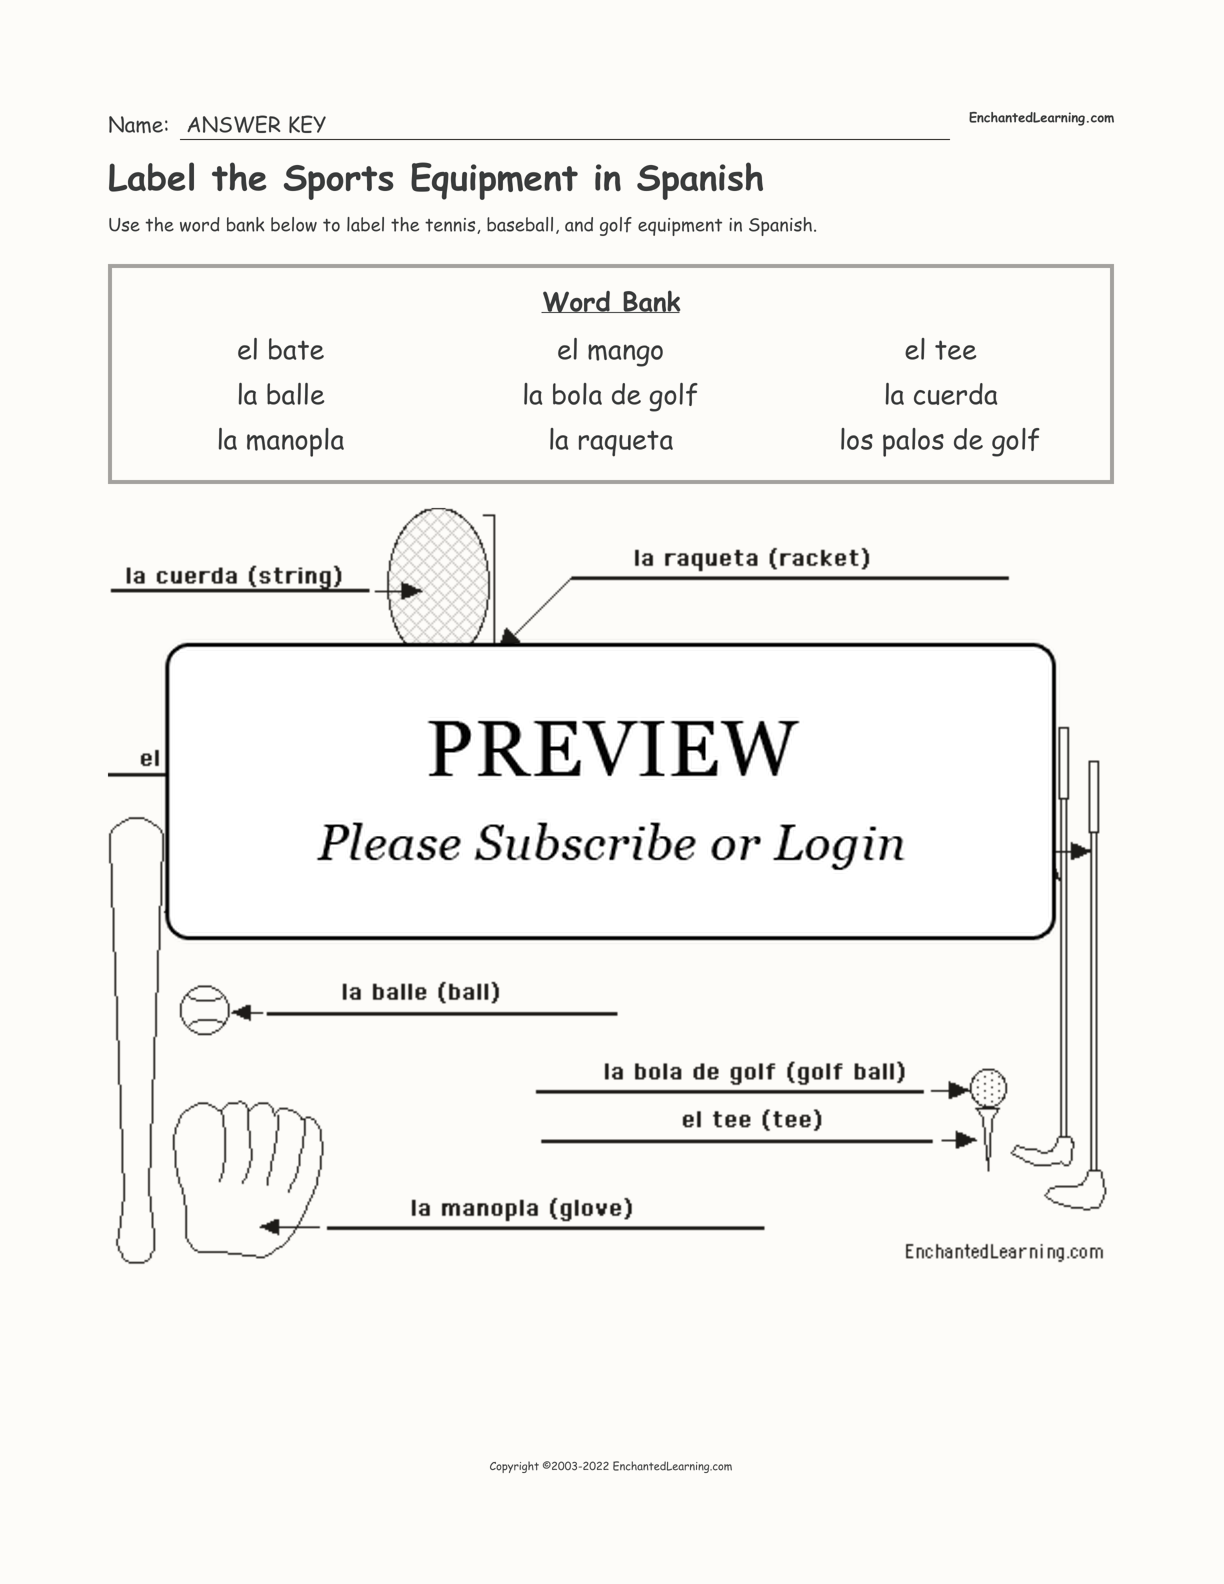 Label the Sports Equipment in Spanish interactive worksheet page 2